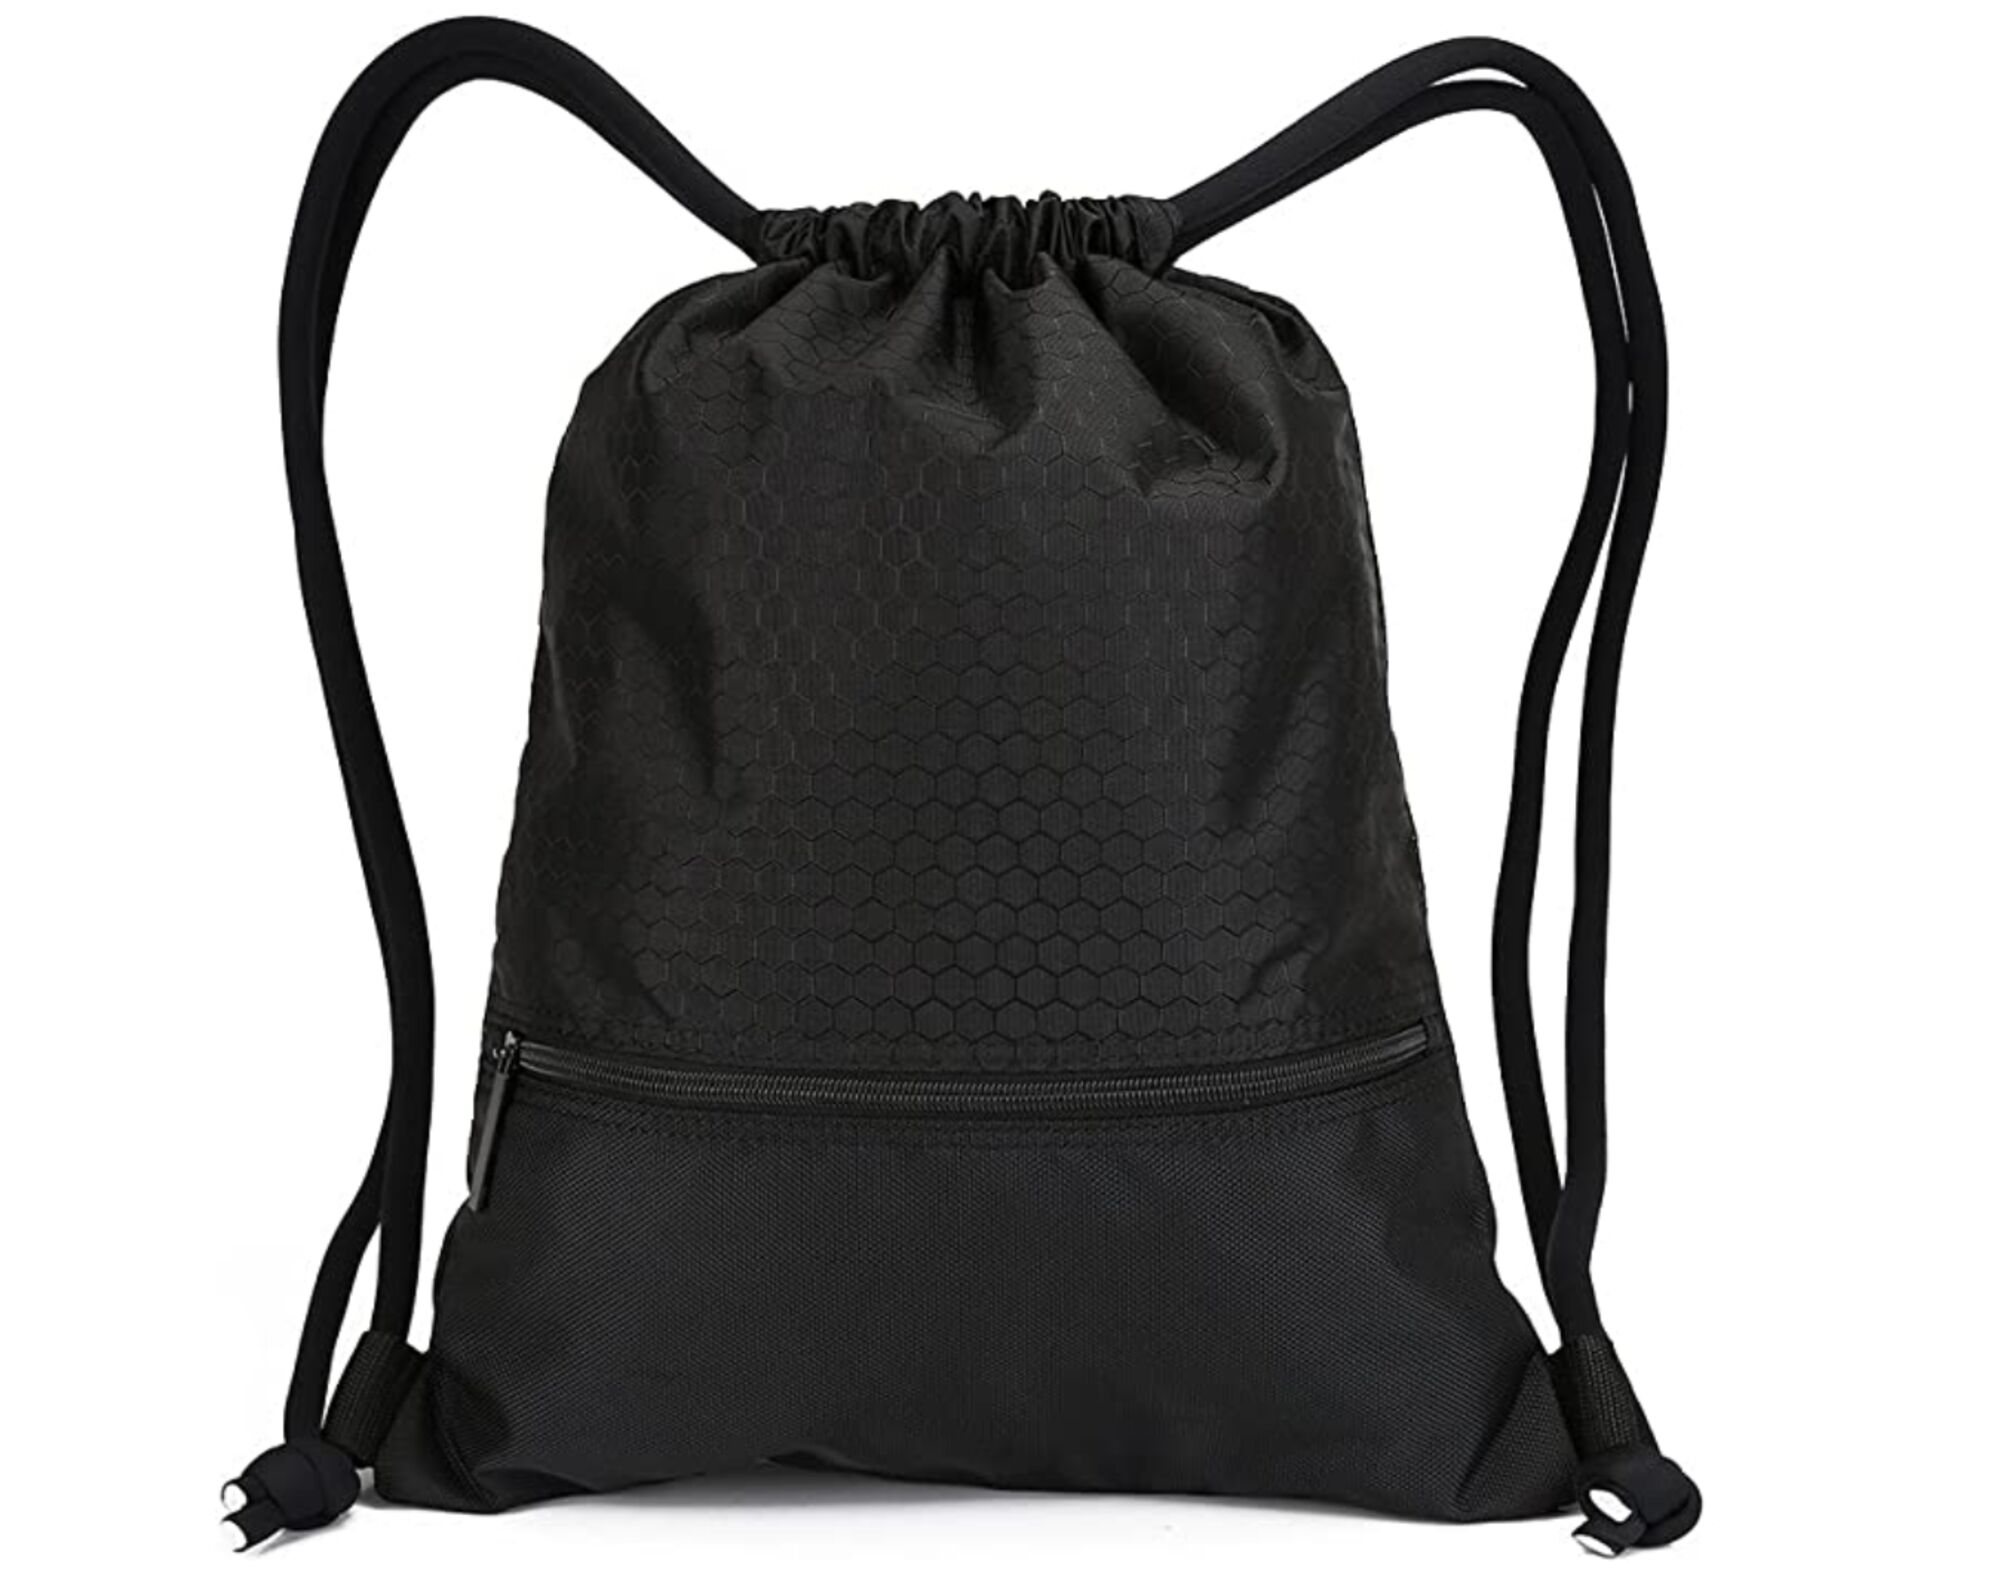 (For representation) A black colour small string bag